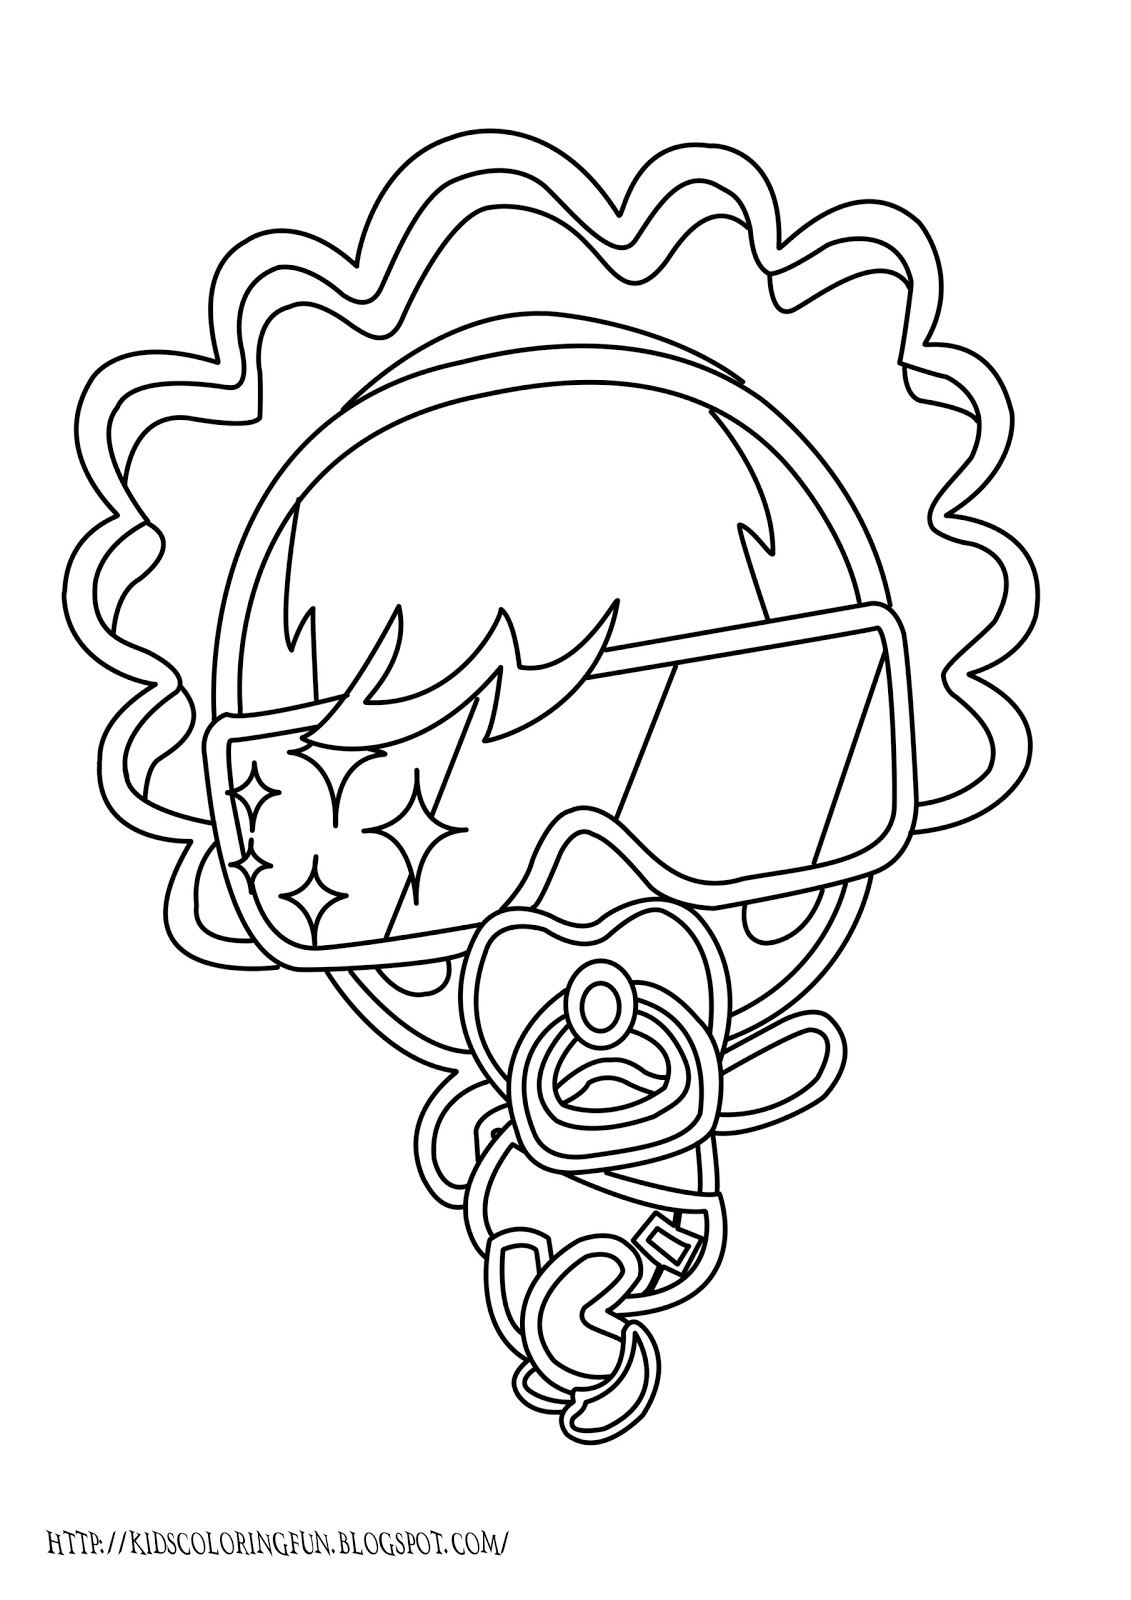 Funny Monster Coloring Pages At Getdrawings Com Free For Personal